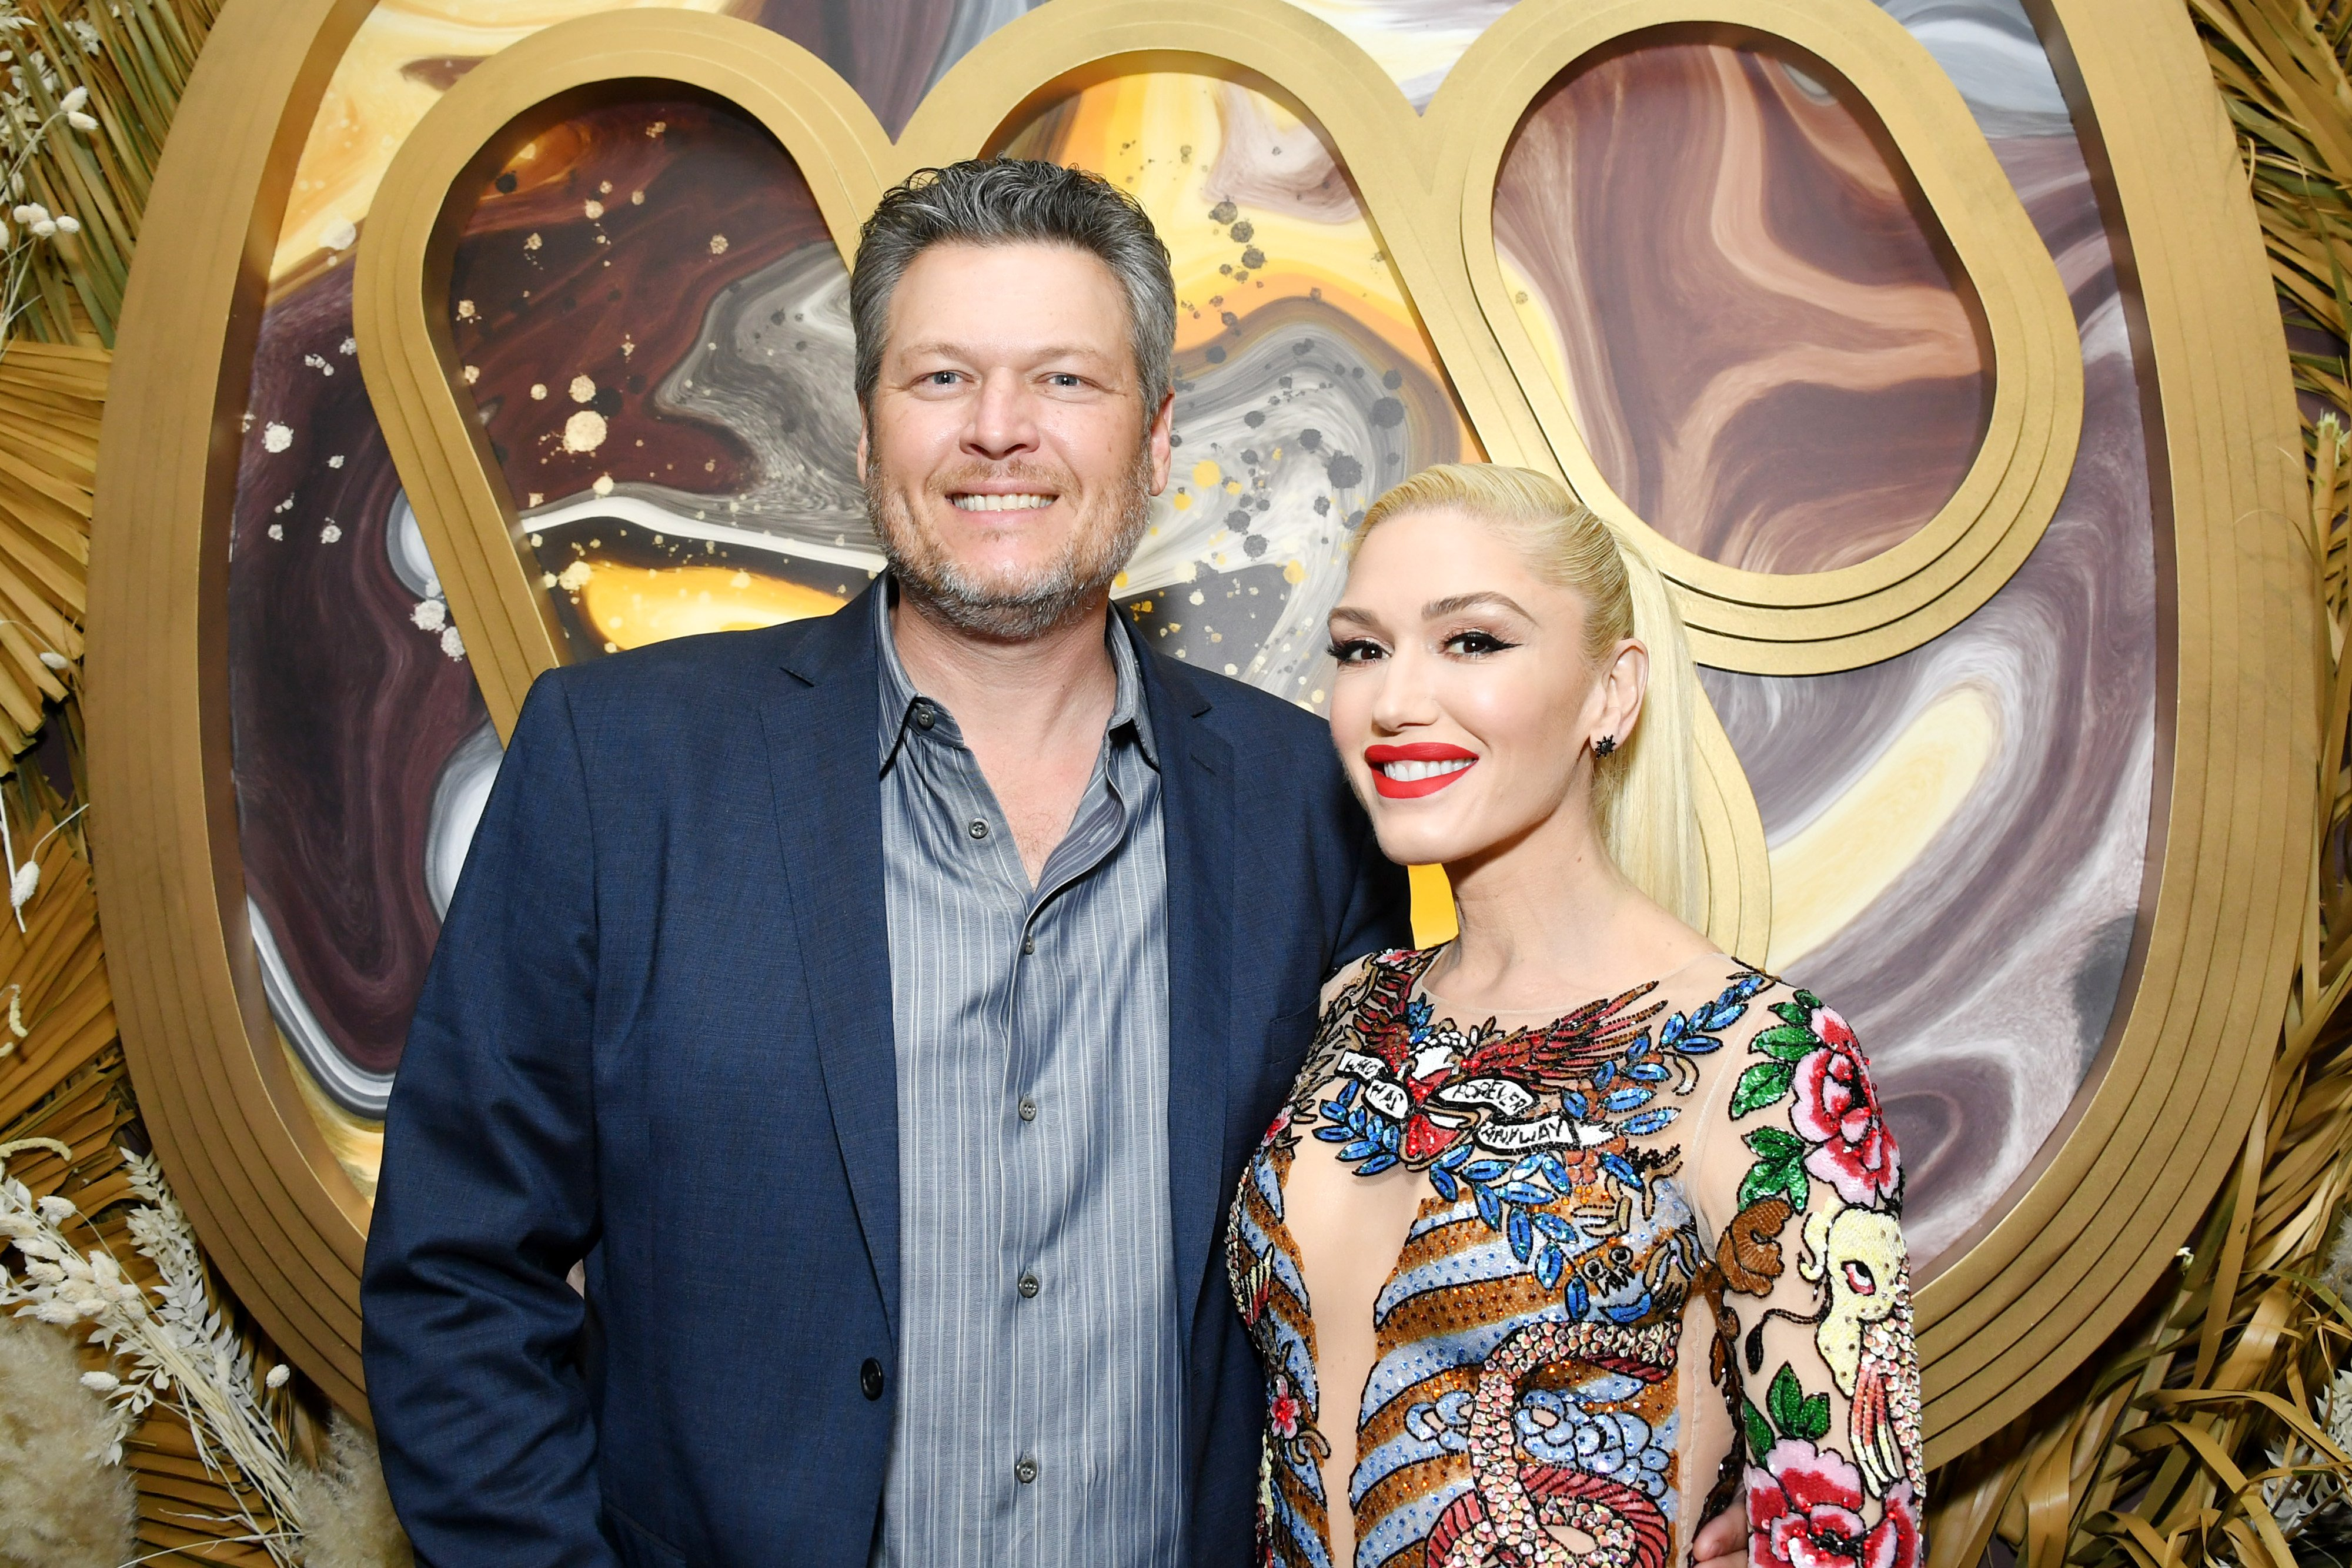 Blake Shelton and Gwen Stefani attend the Warner Music Group Pre-Grammy Party on January 23, 2020, in Hollywood, California. | Source: Getty Images.